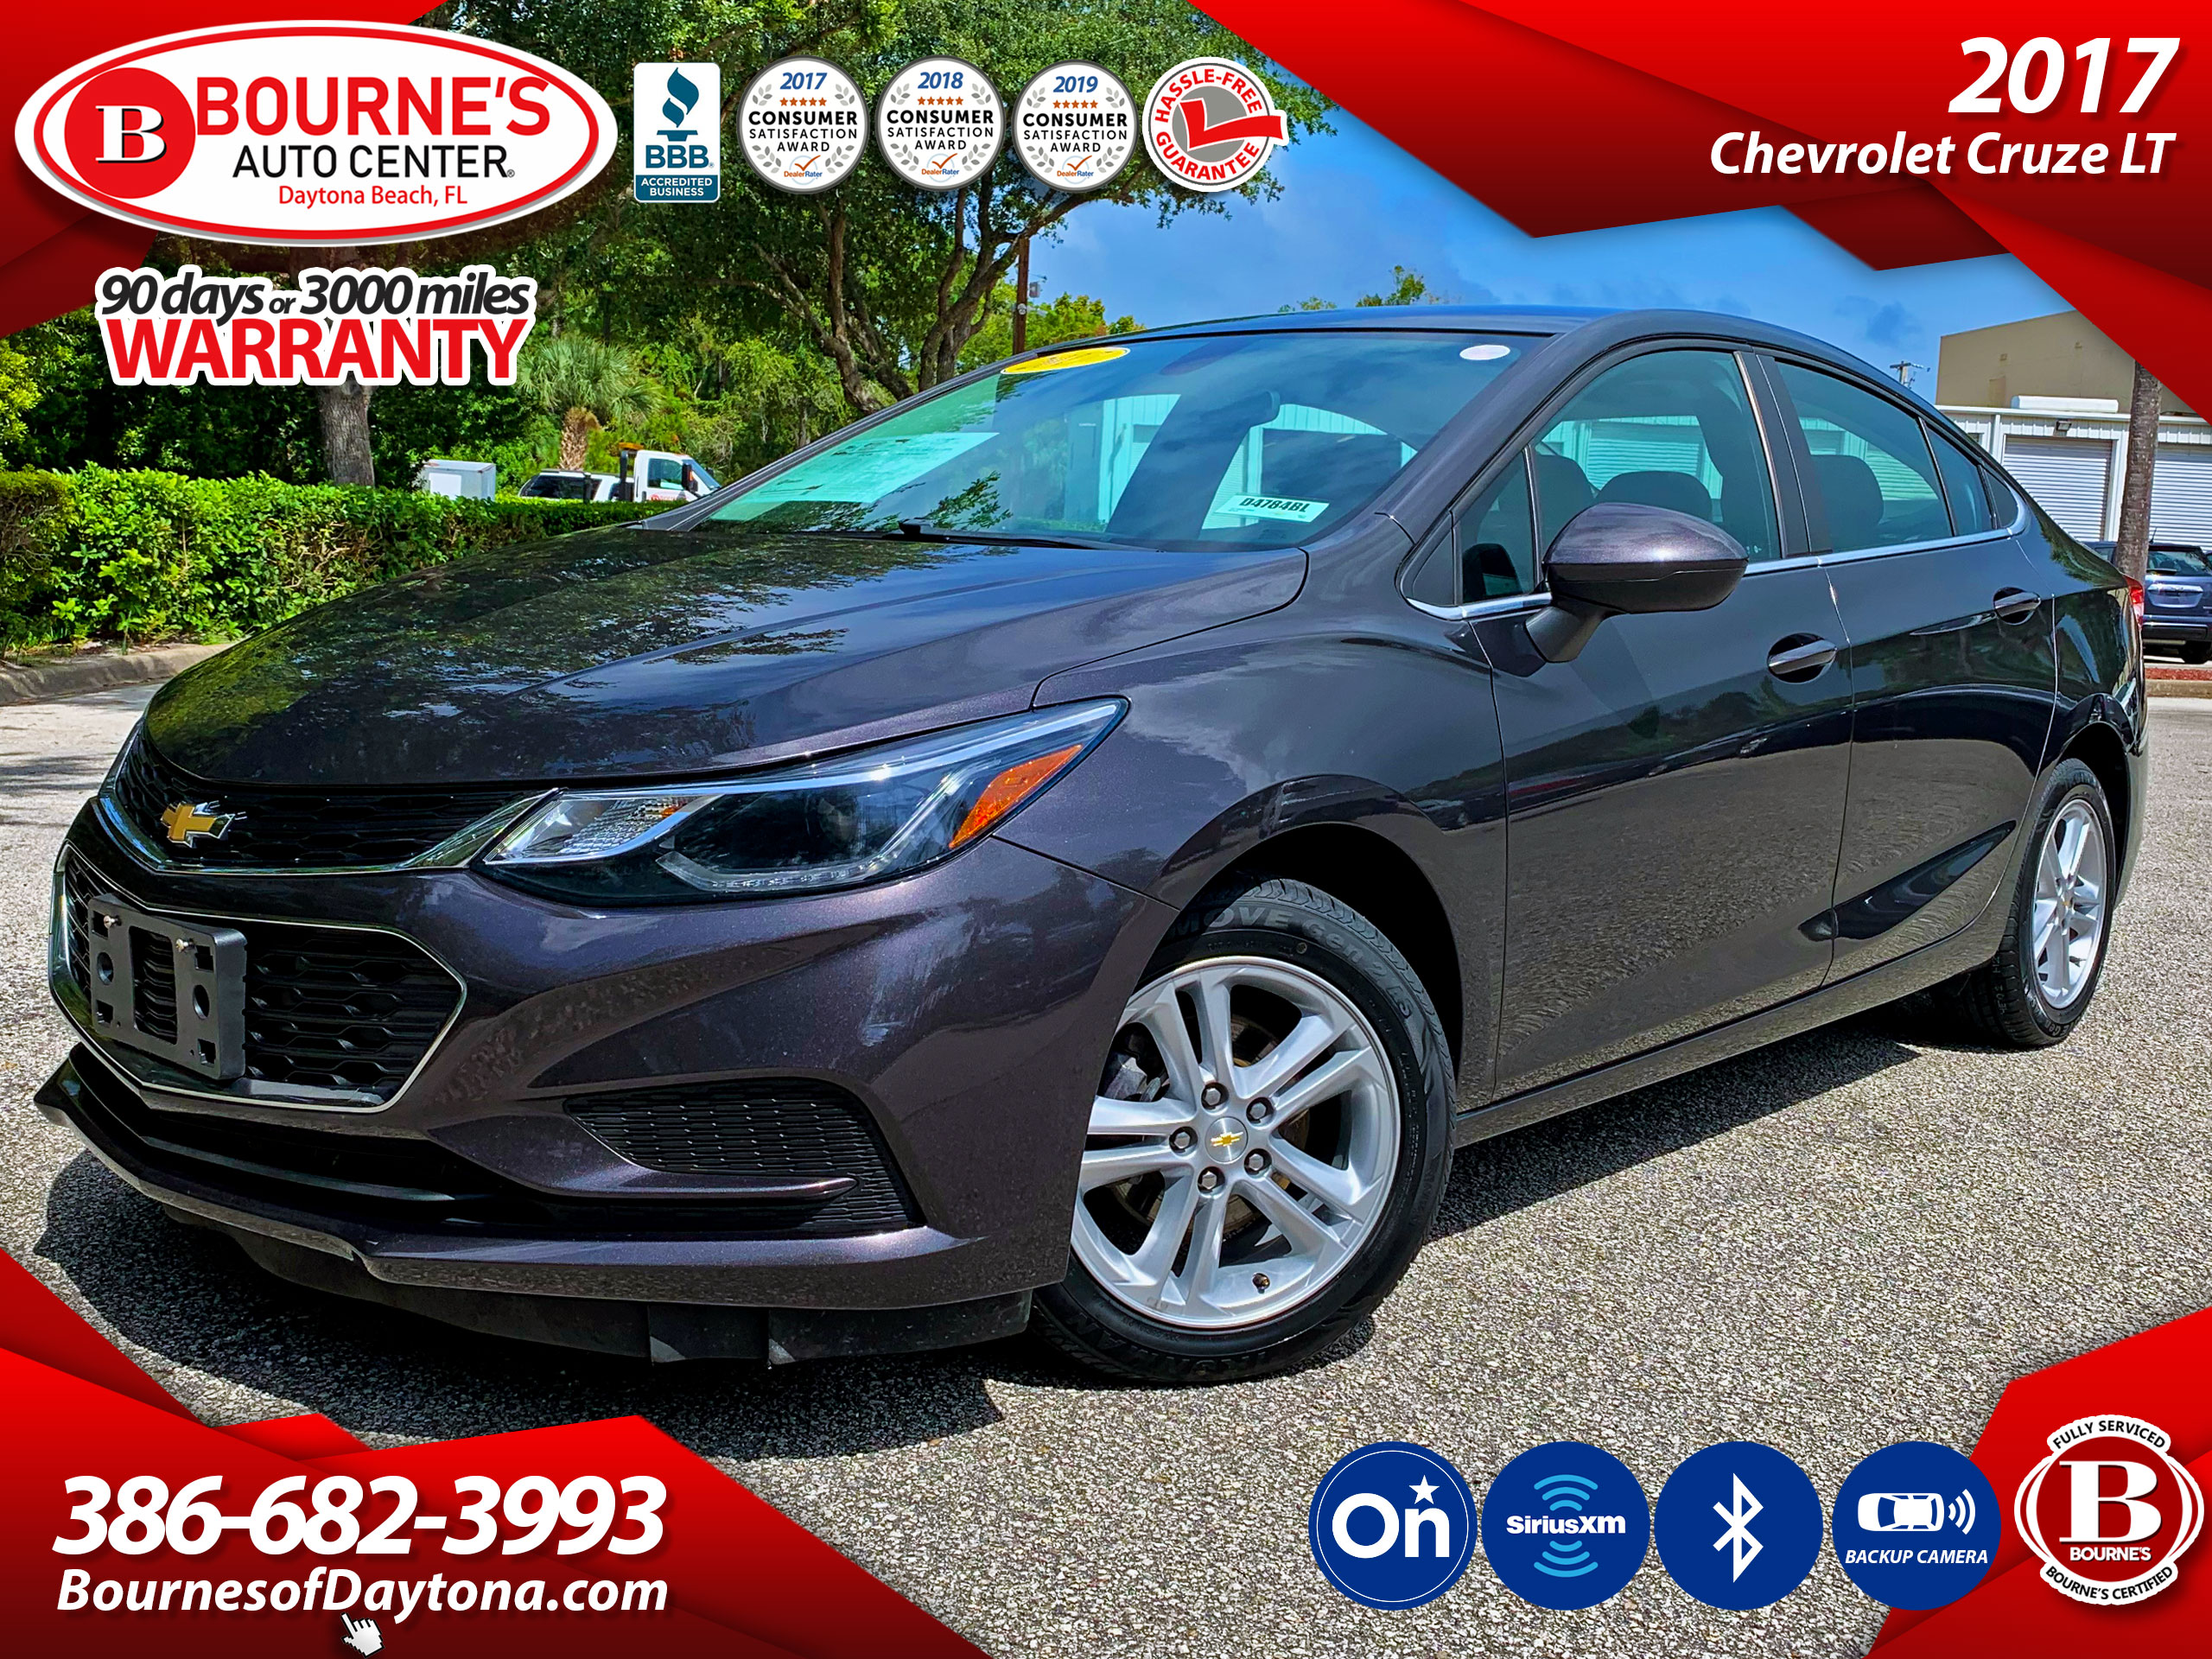 2017 Chevrolet Cruze LT Auto w/ OnStar, Bluetooth Sedan